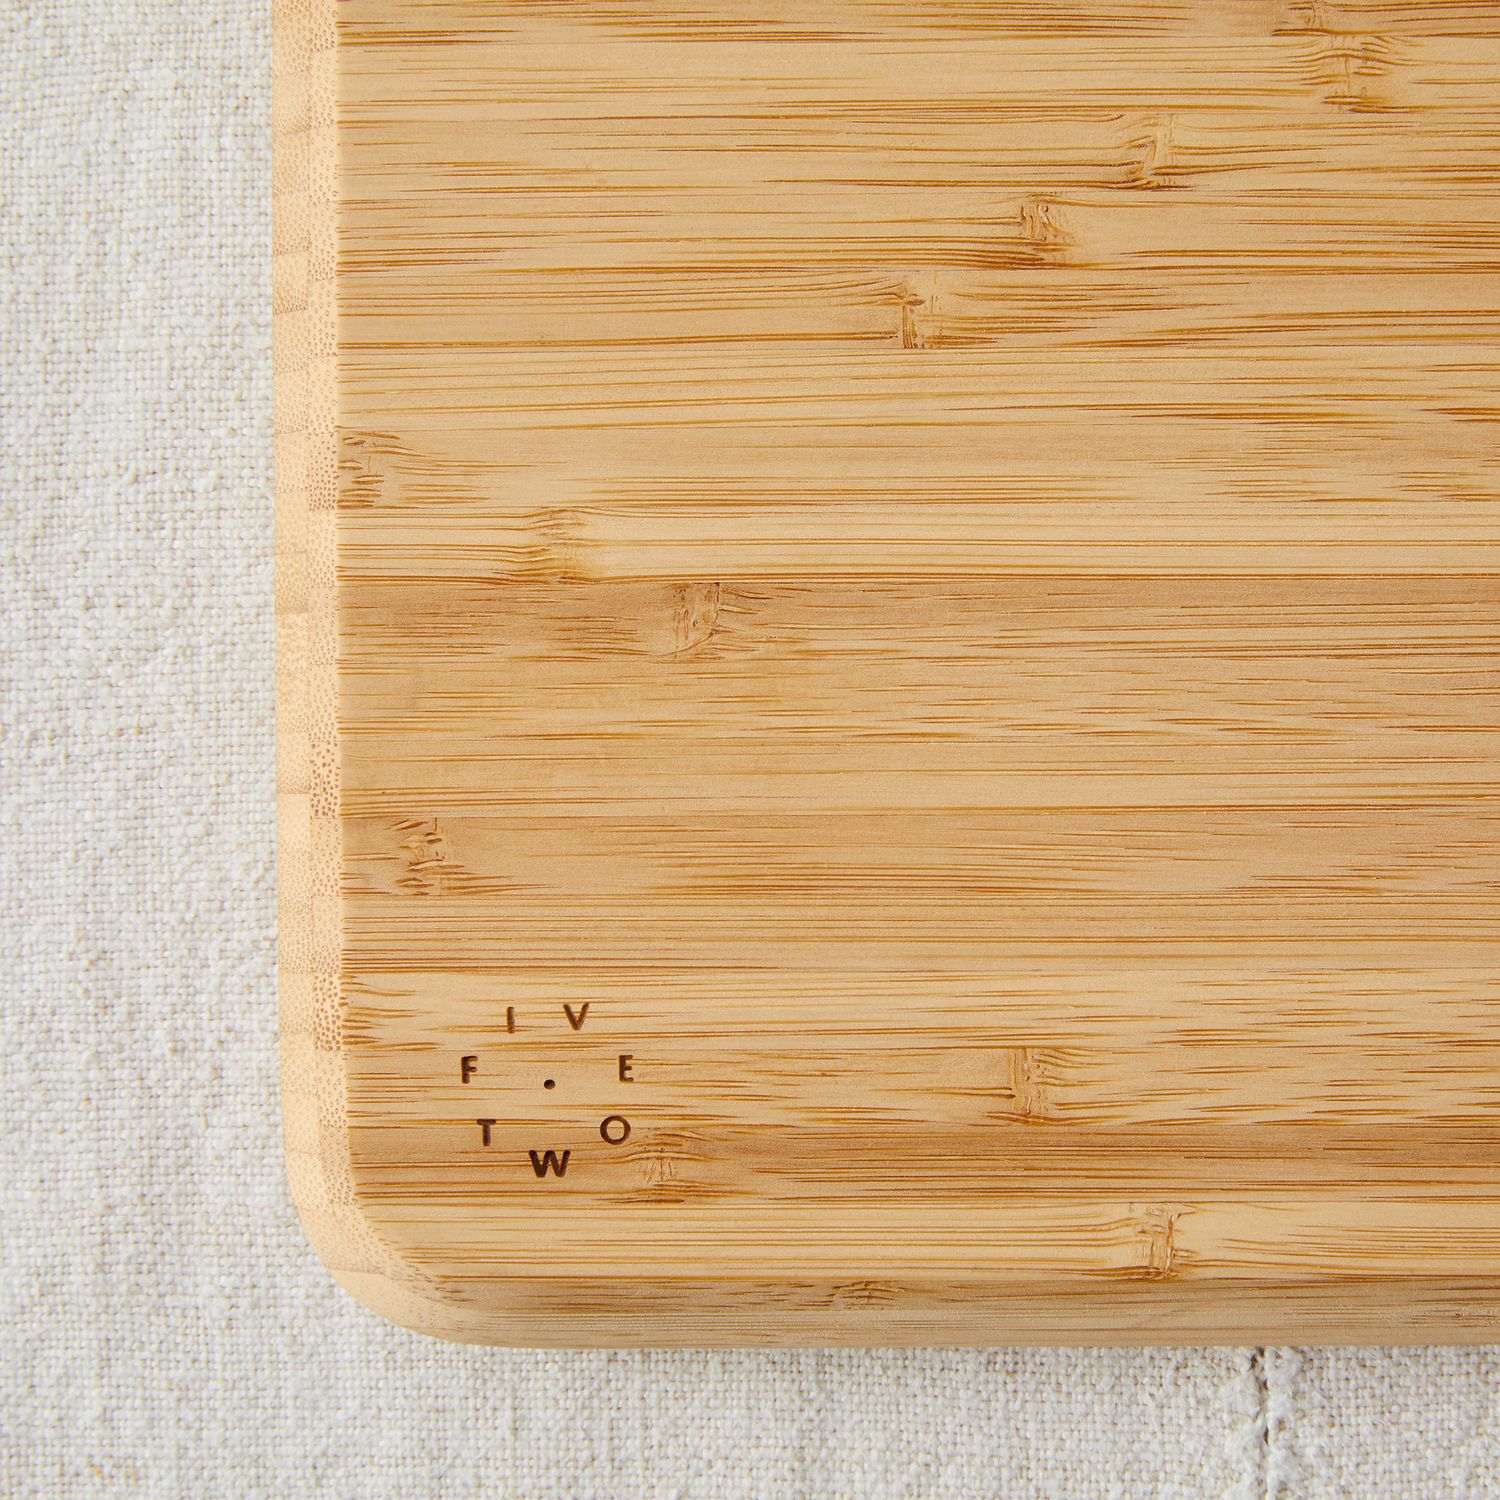 Bamboo cutting board, Double-sided, Juice groove, Easy to grip, Phone slot, Right thickness